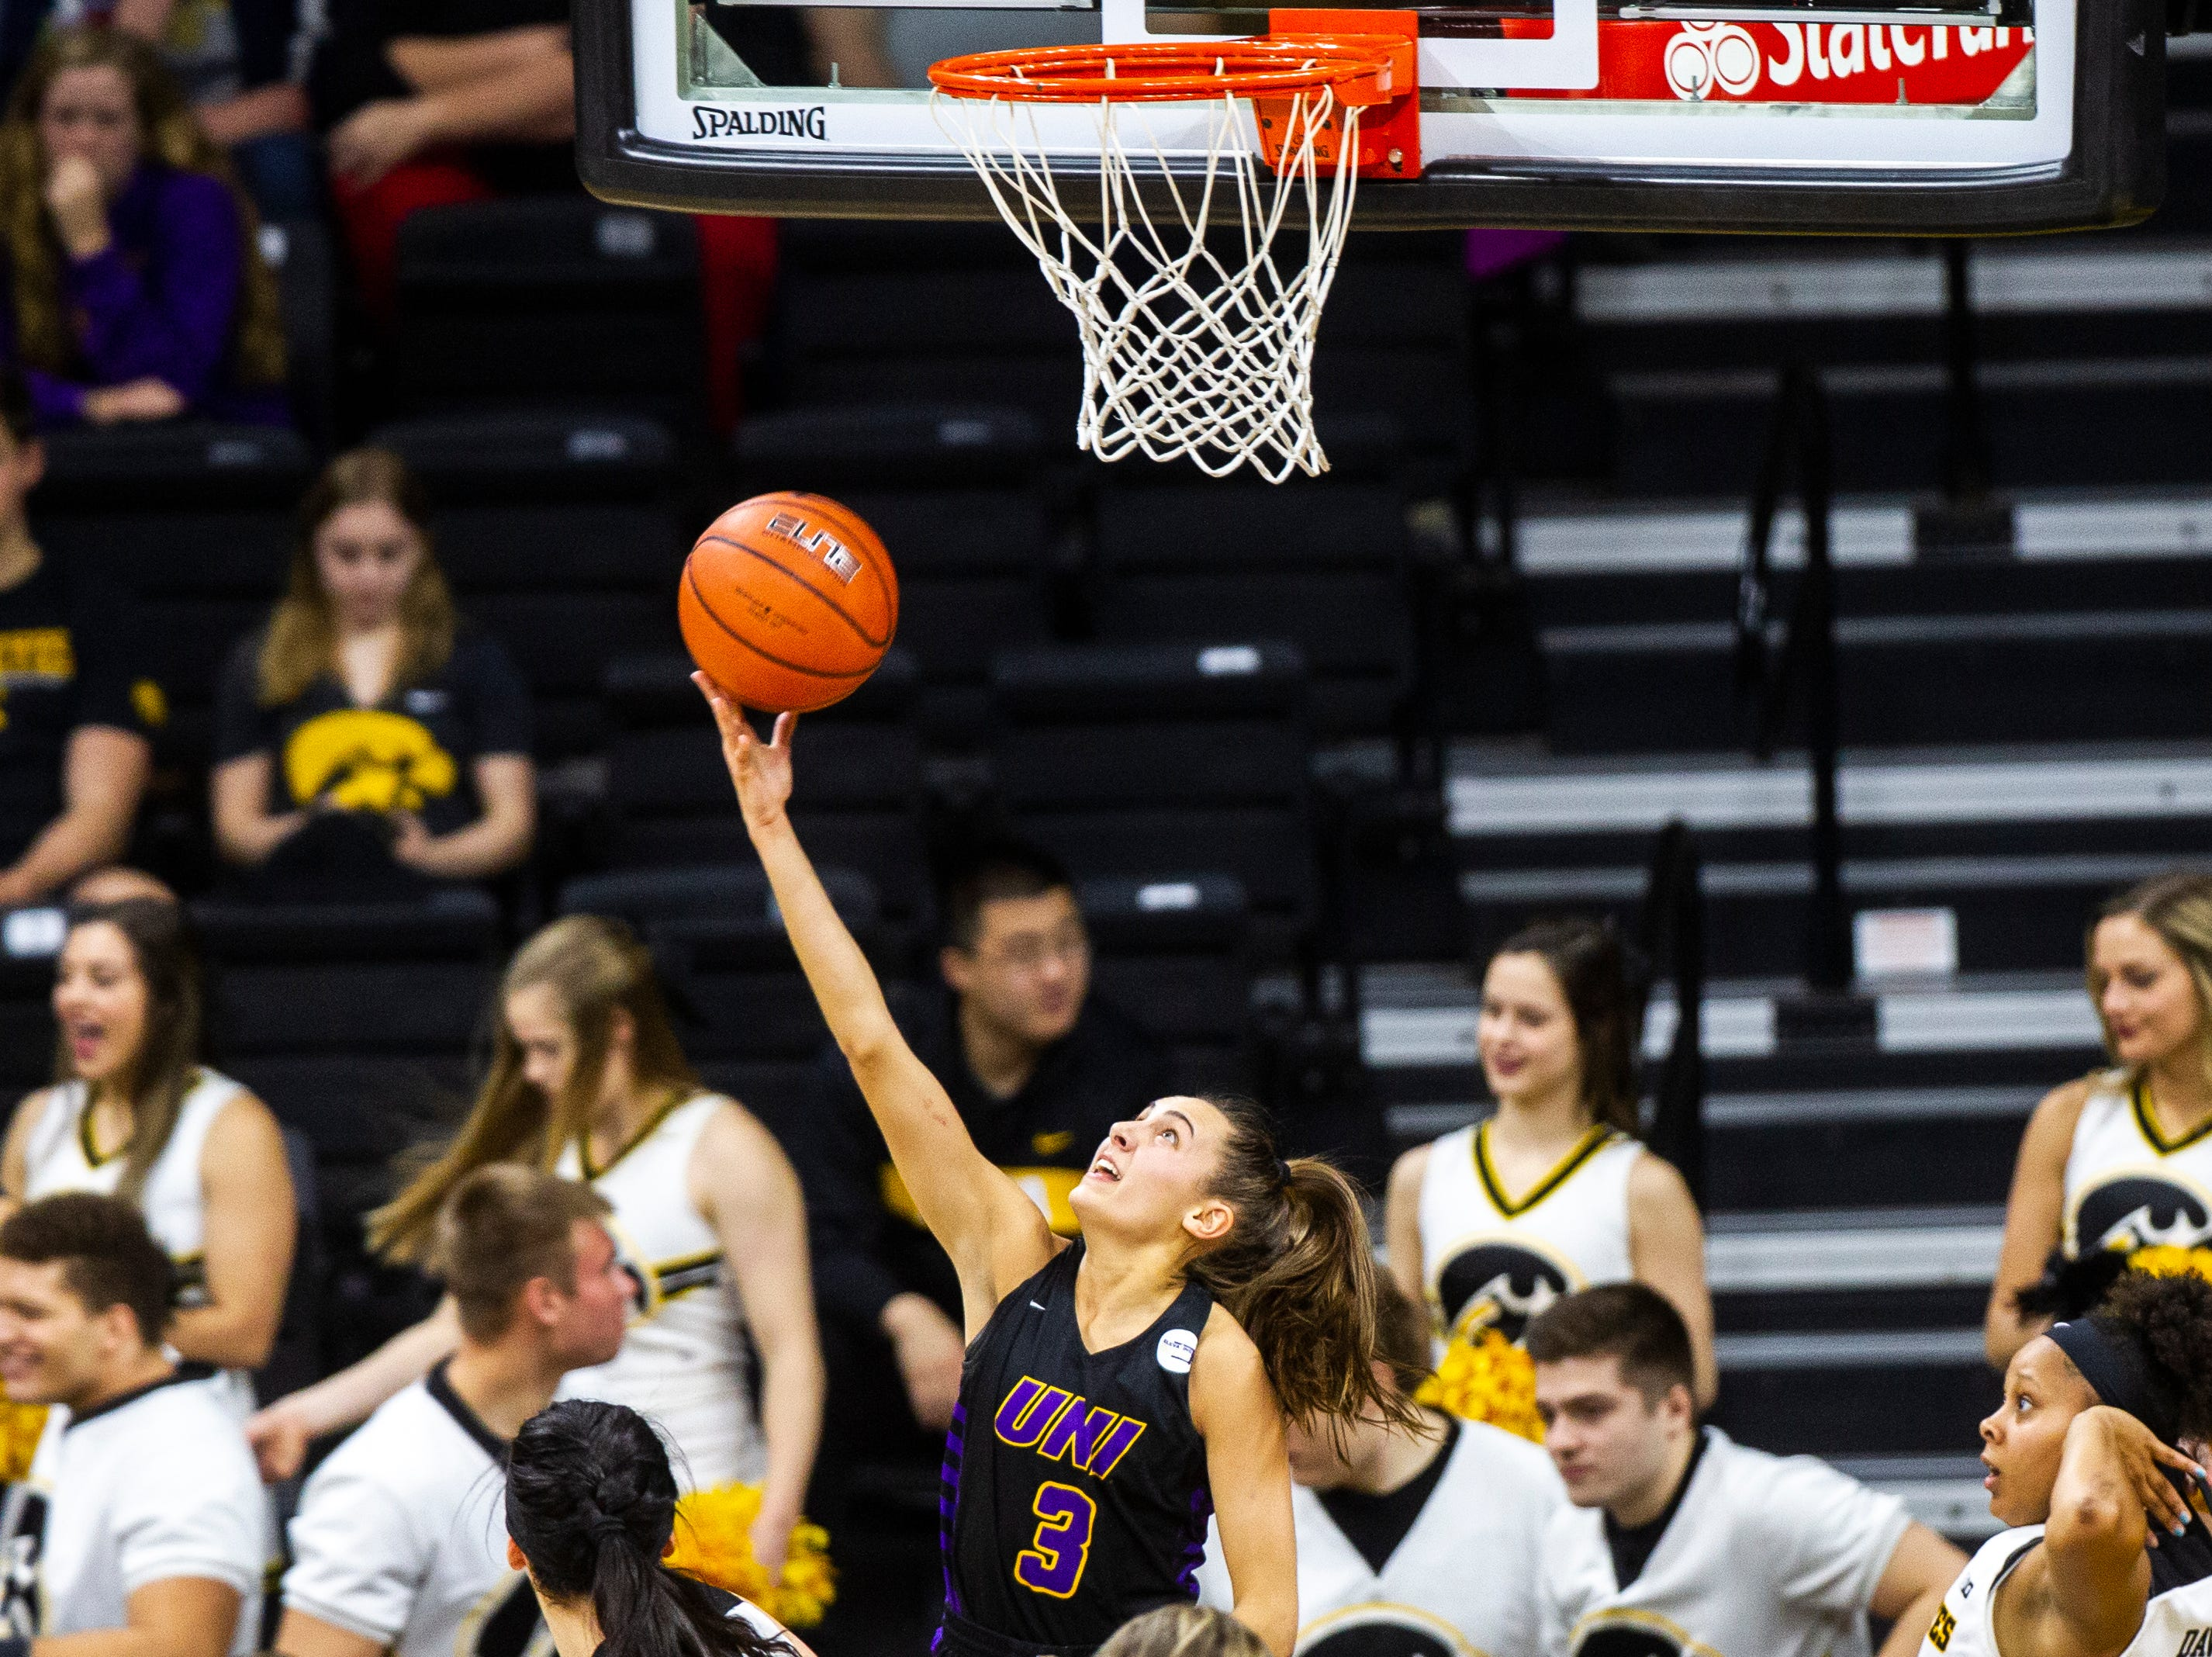 Northern Iowa guard Karli Rucker (3) attempts a basket during a NCAA women's basketball game on Sunday, Dec. 16, 2018, at Carver-Hawkeye Arena in Iowa City.